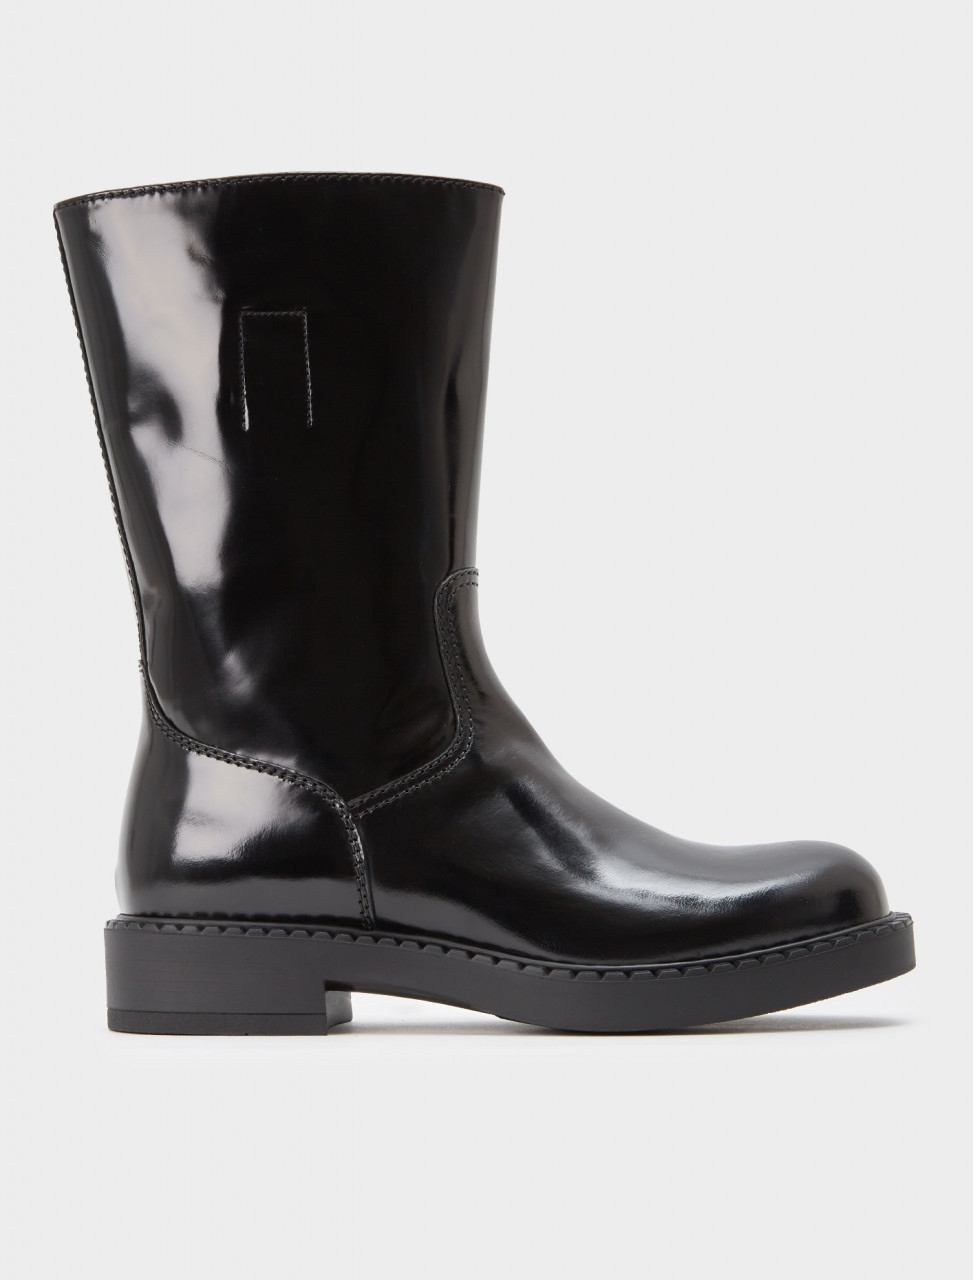 242-2UE012-P39-F0002 PRADA BRUSHED LEATHER MID CALF BOOTS